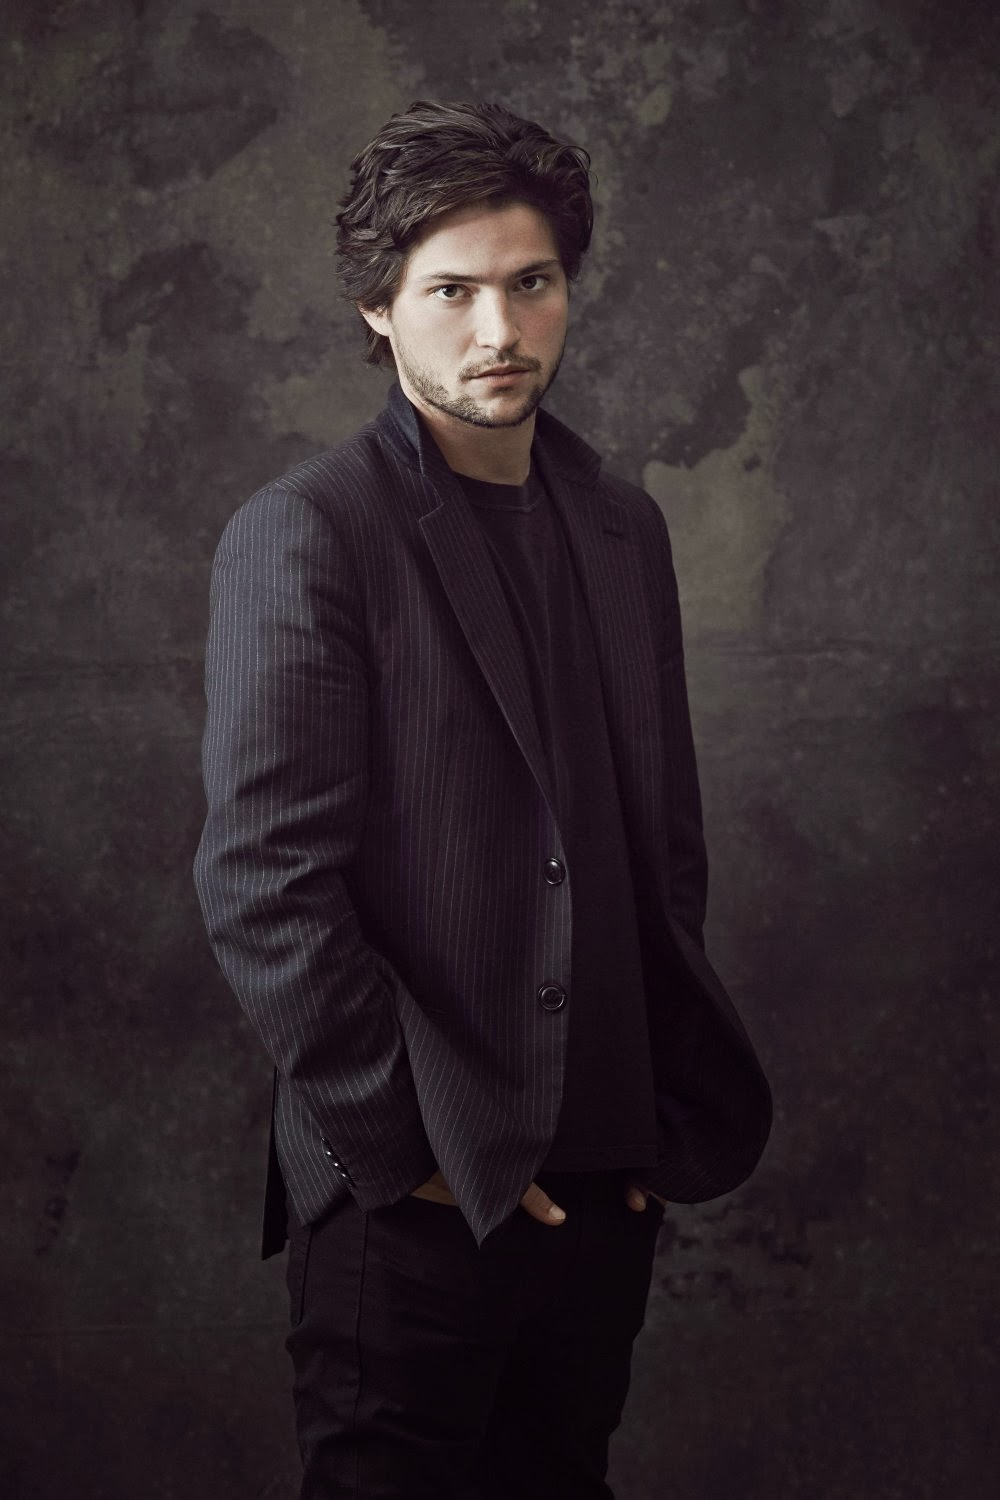 thomas mcdonell vkthomas mcdonell instagram, thomas mcdonell 2017, thomas mcdonell gif, thomas mcdonell 2016, thomas mcdonell the 100, thomas mcdonell interview, thomas mcdonell filmography, thomas mcdonell imdb, thomas mcdonell height, thomas mcdonell relationship, thomas mcdonell vk, thomas mcdonell biography, thomas mcdonell twitter official, thomas mcdonell about finn's death, thomas mcdonell korean, thomas mcdonell and jane levy, thomas mcdonell dakota johnson, thomas mcdonell gif tumblr